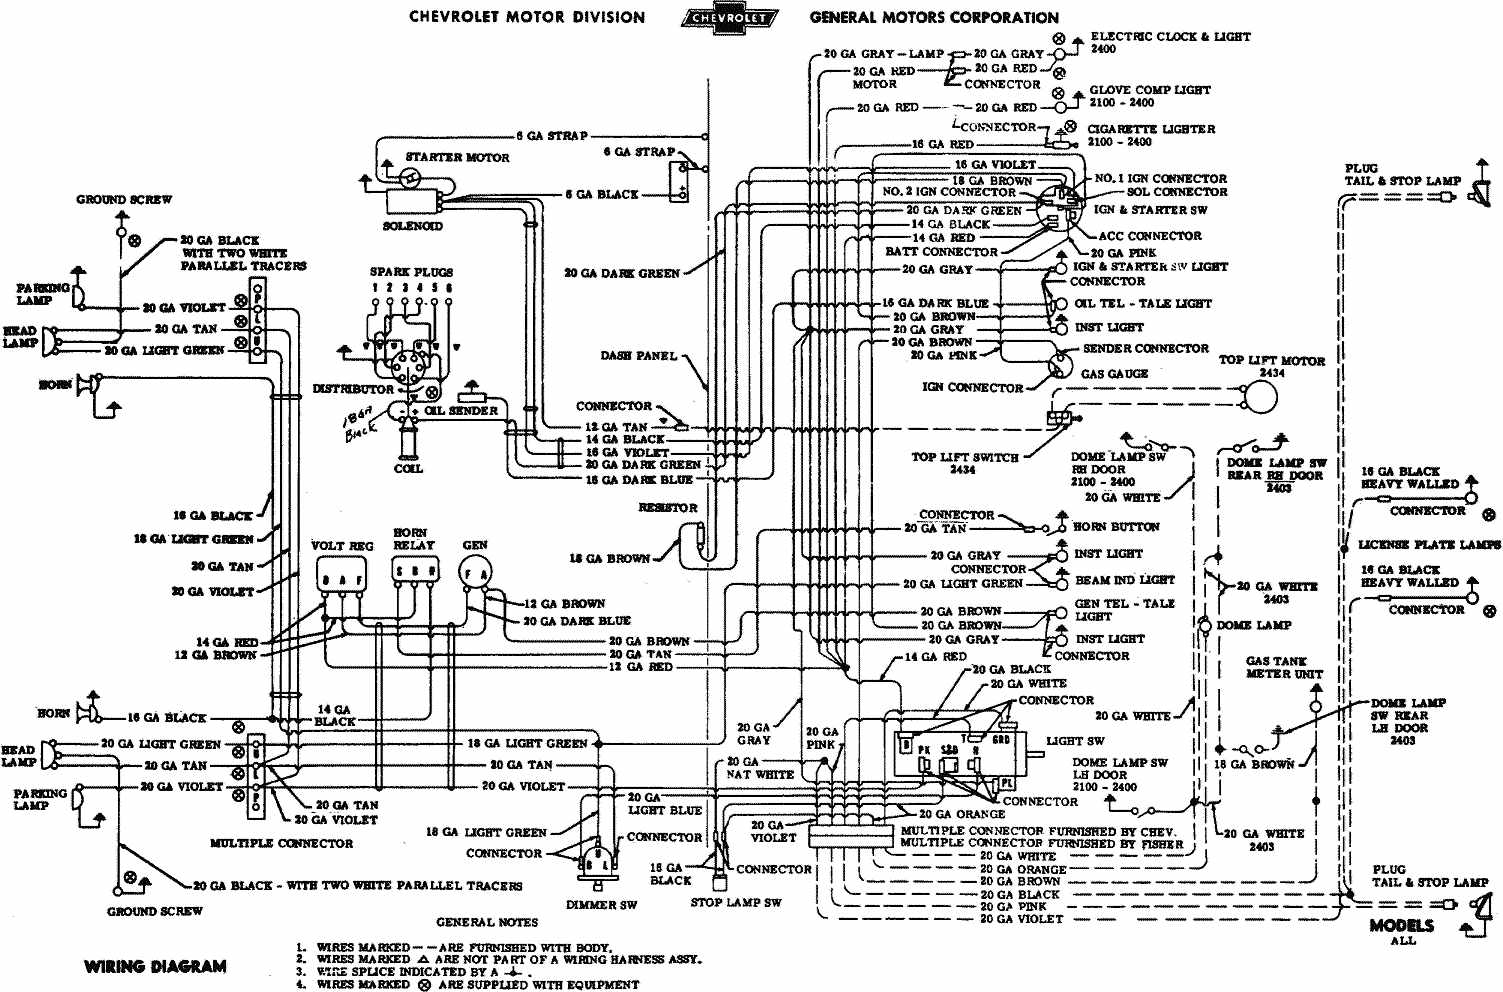 Color Wiring Diagram Further 1967 Vw Beetle Wiring Diagram